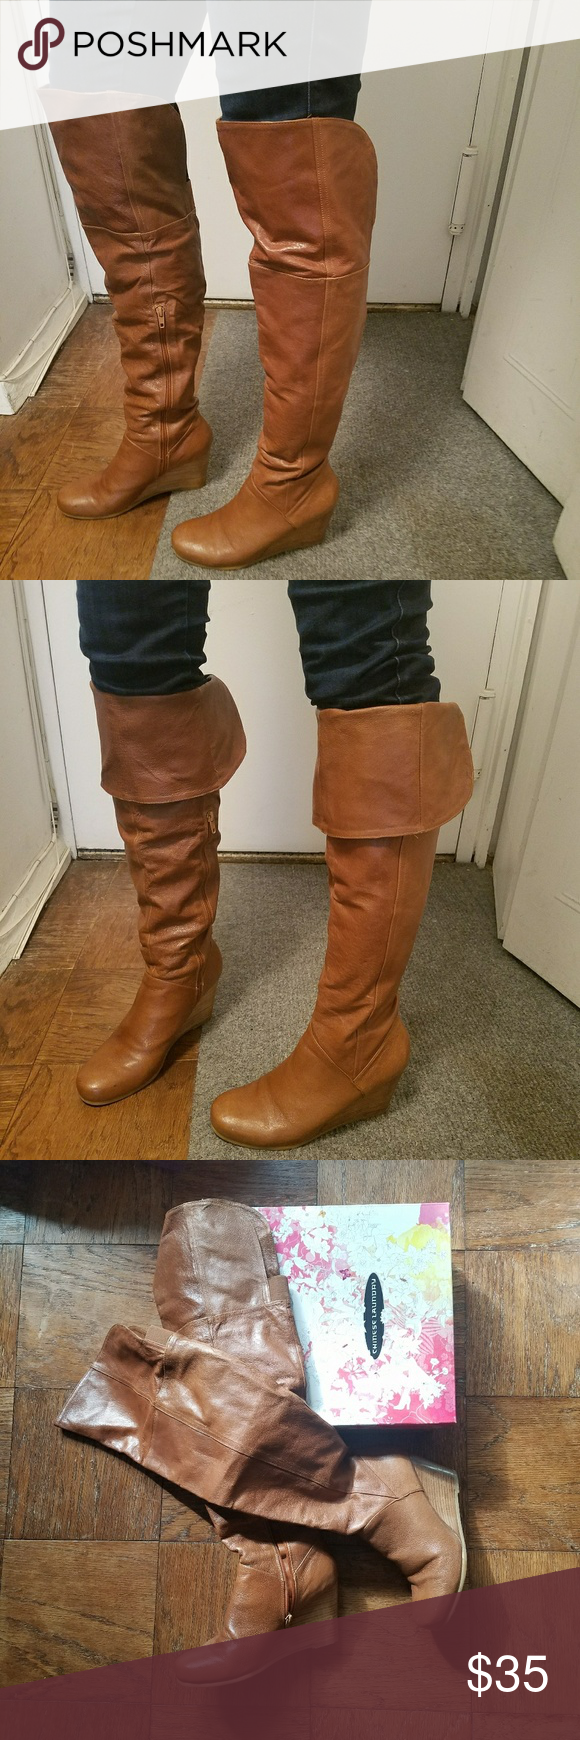 97ad4664b57 Over the knee leather boots Chinese Laundry Over the knee   knee high  leather boots Tan   light brown color 3.5